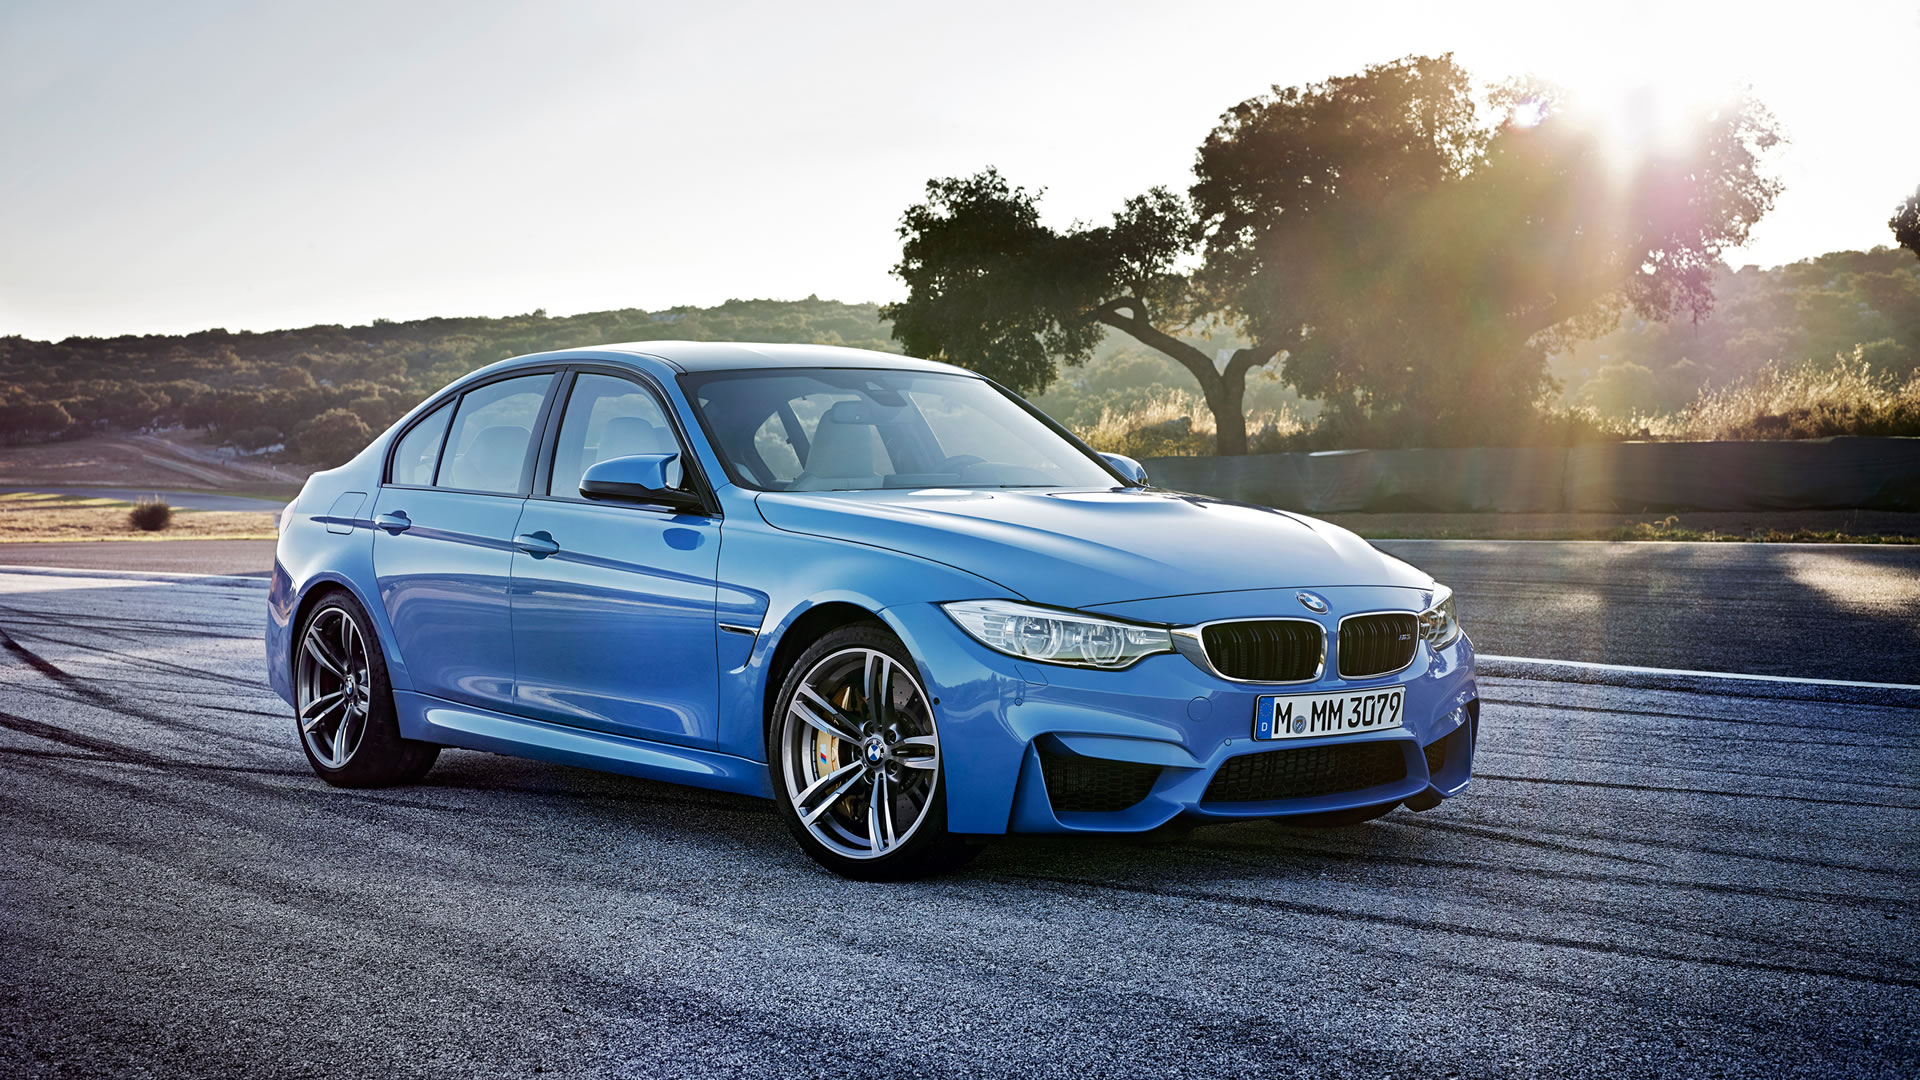 2015 BMW M3 Sedan Wallpaper - 1920 x 1080, Yas Marina Blue ...